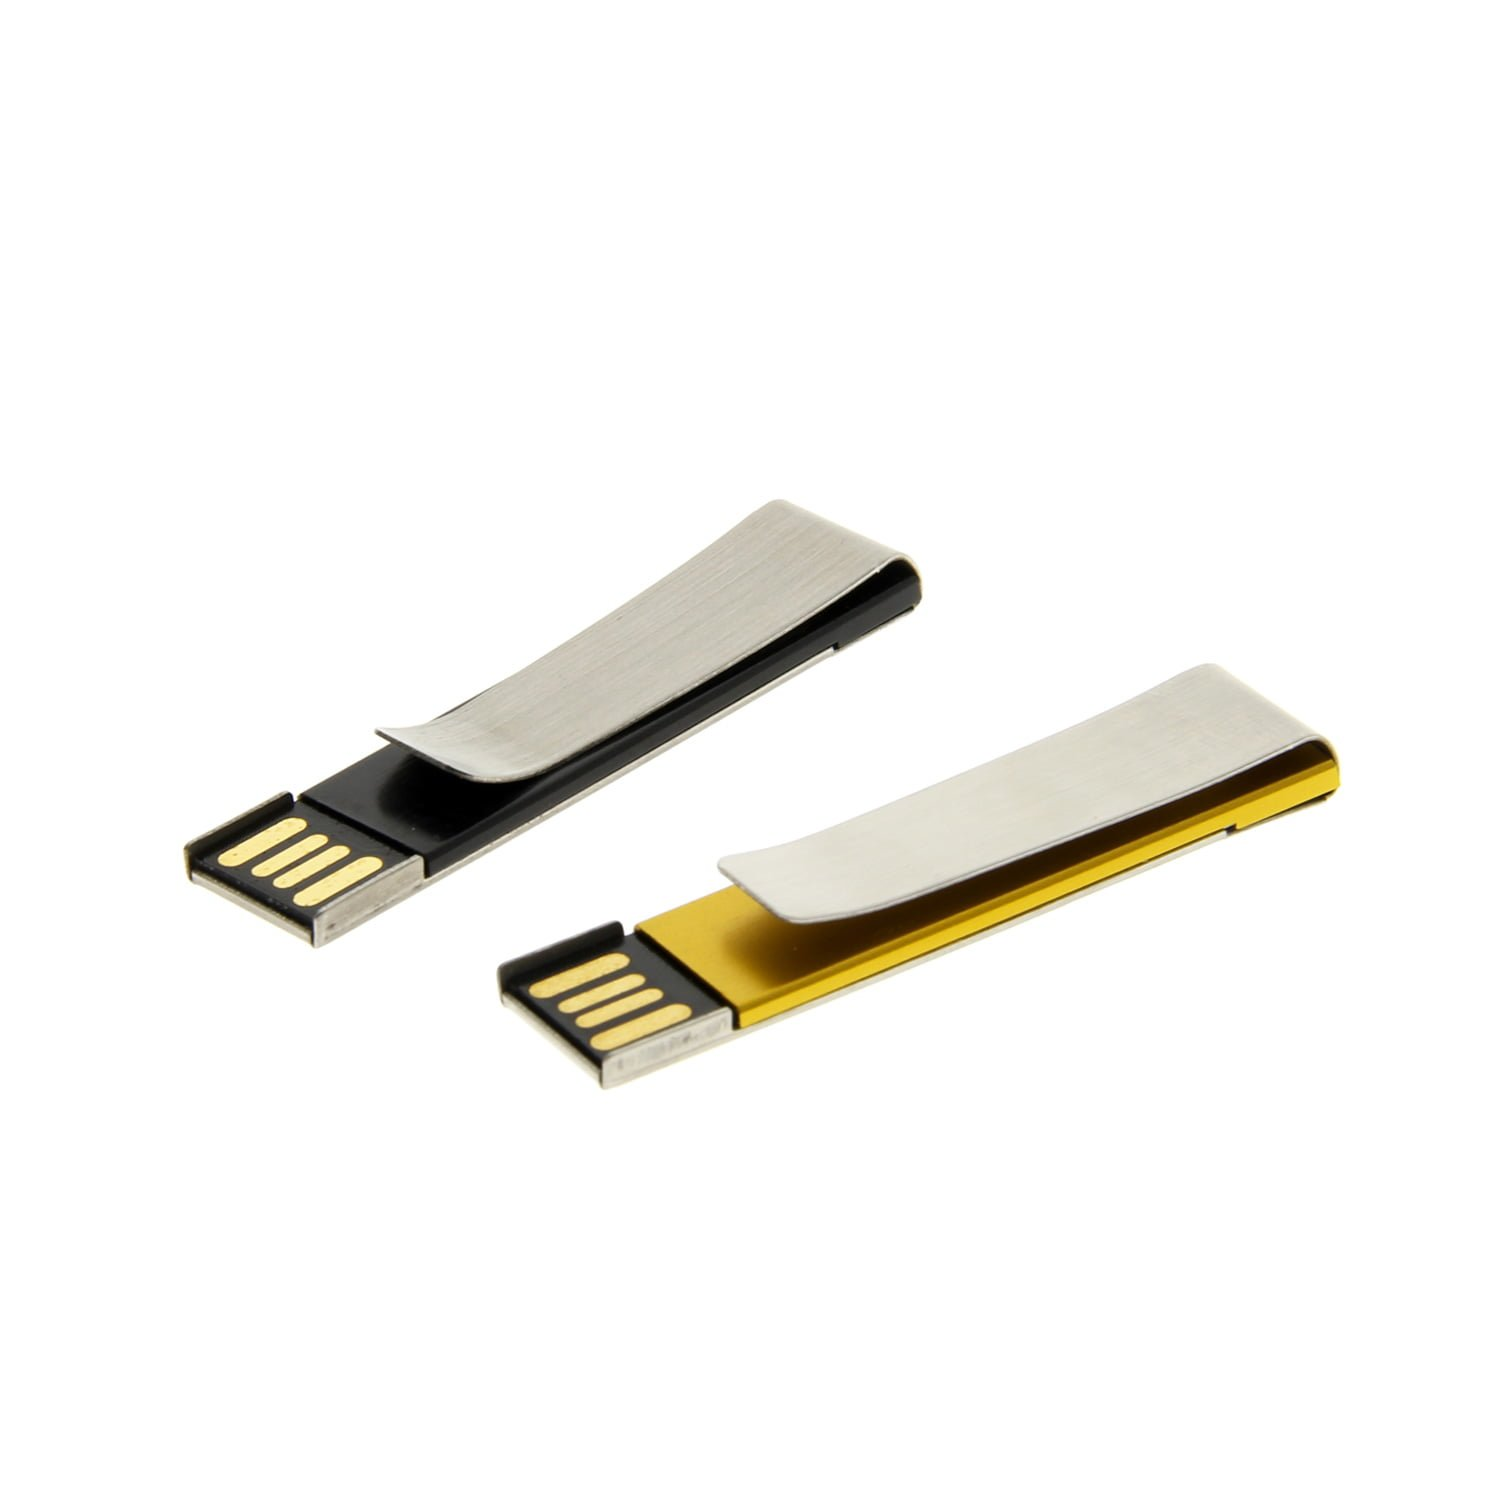 M010 Metal Clip USB Flash Drive